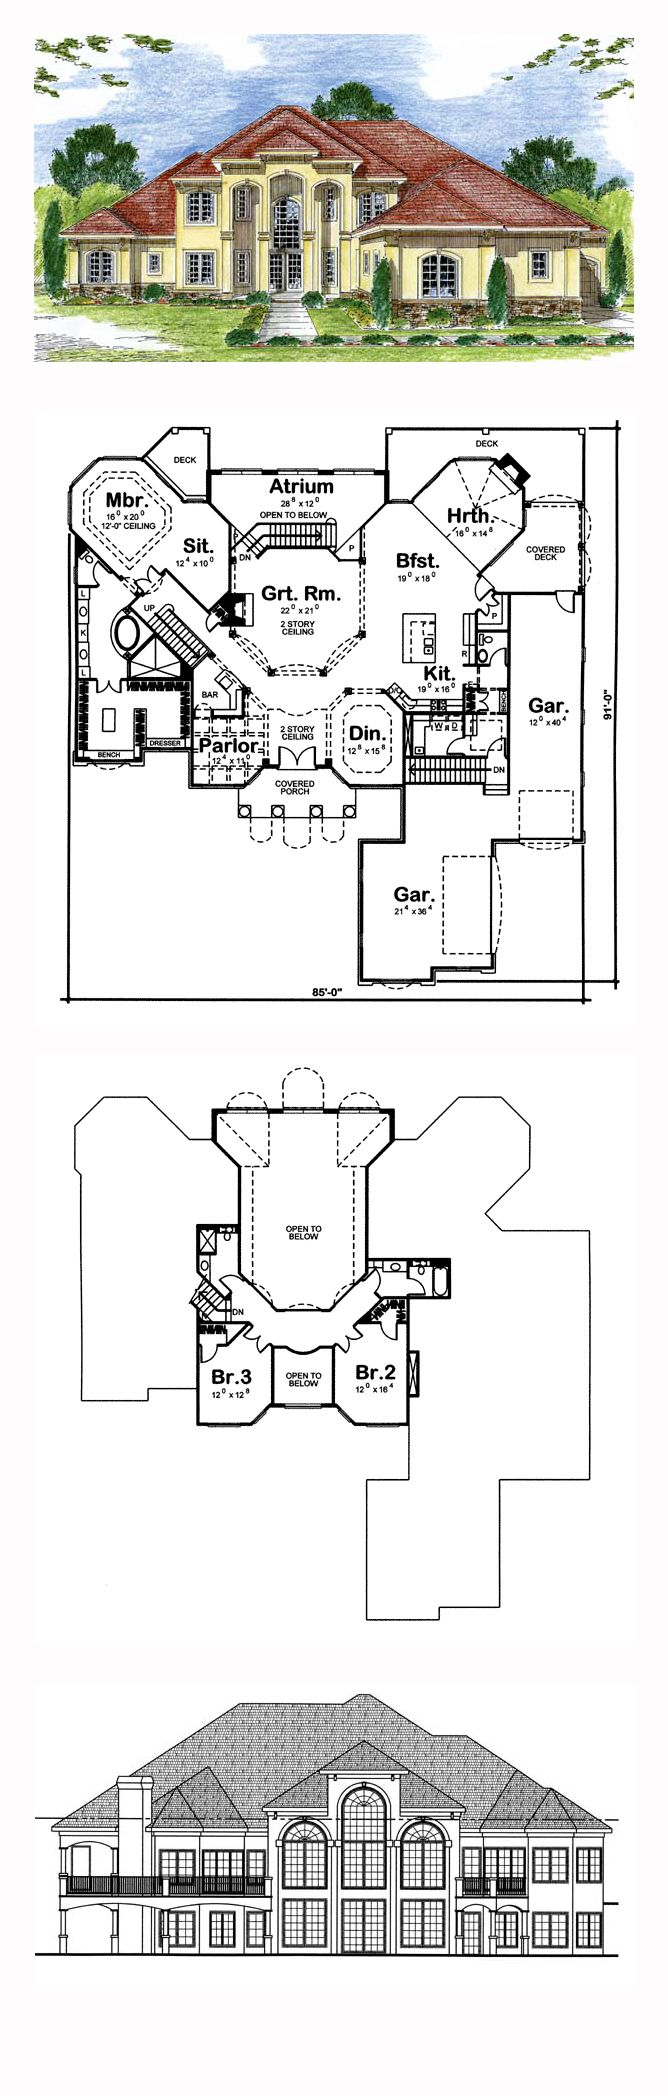 49 best images about southwest house plans on pinterest for Southwest house floor plans